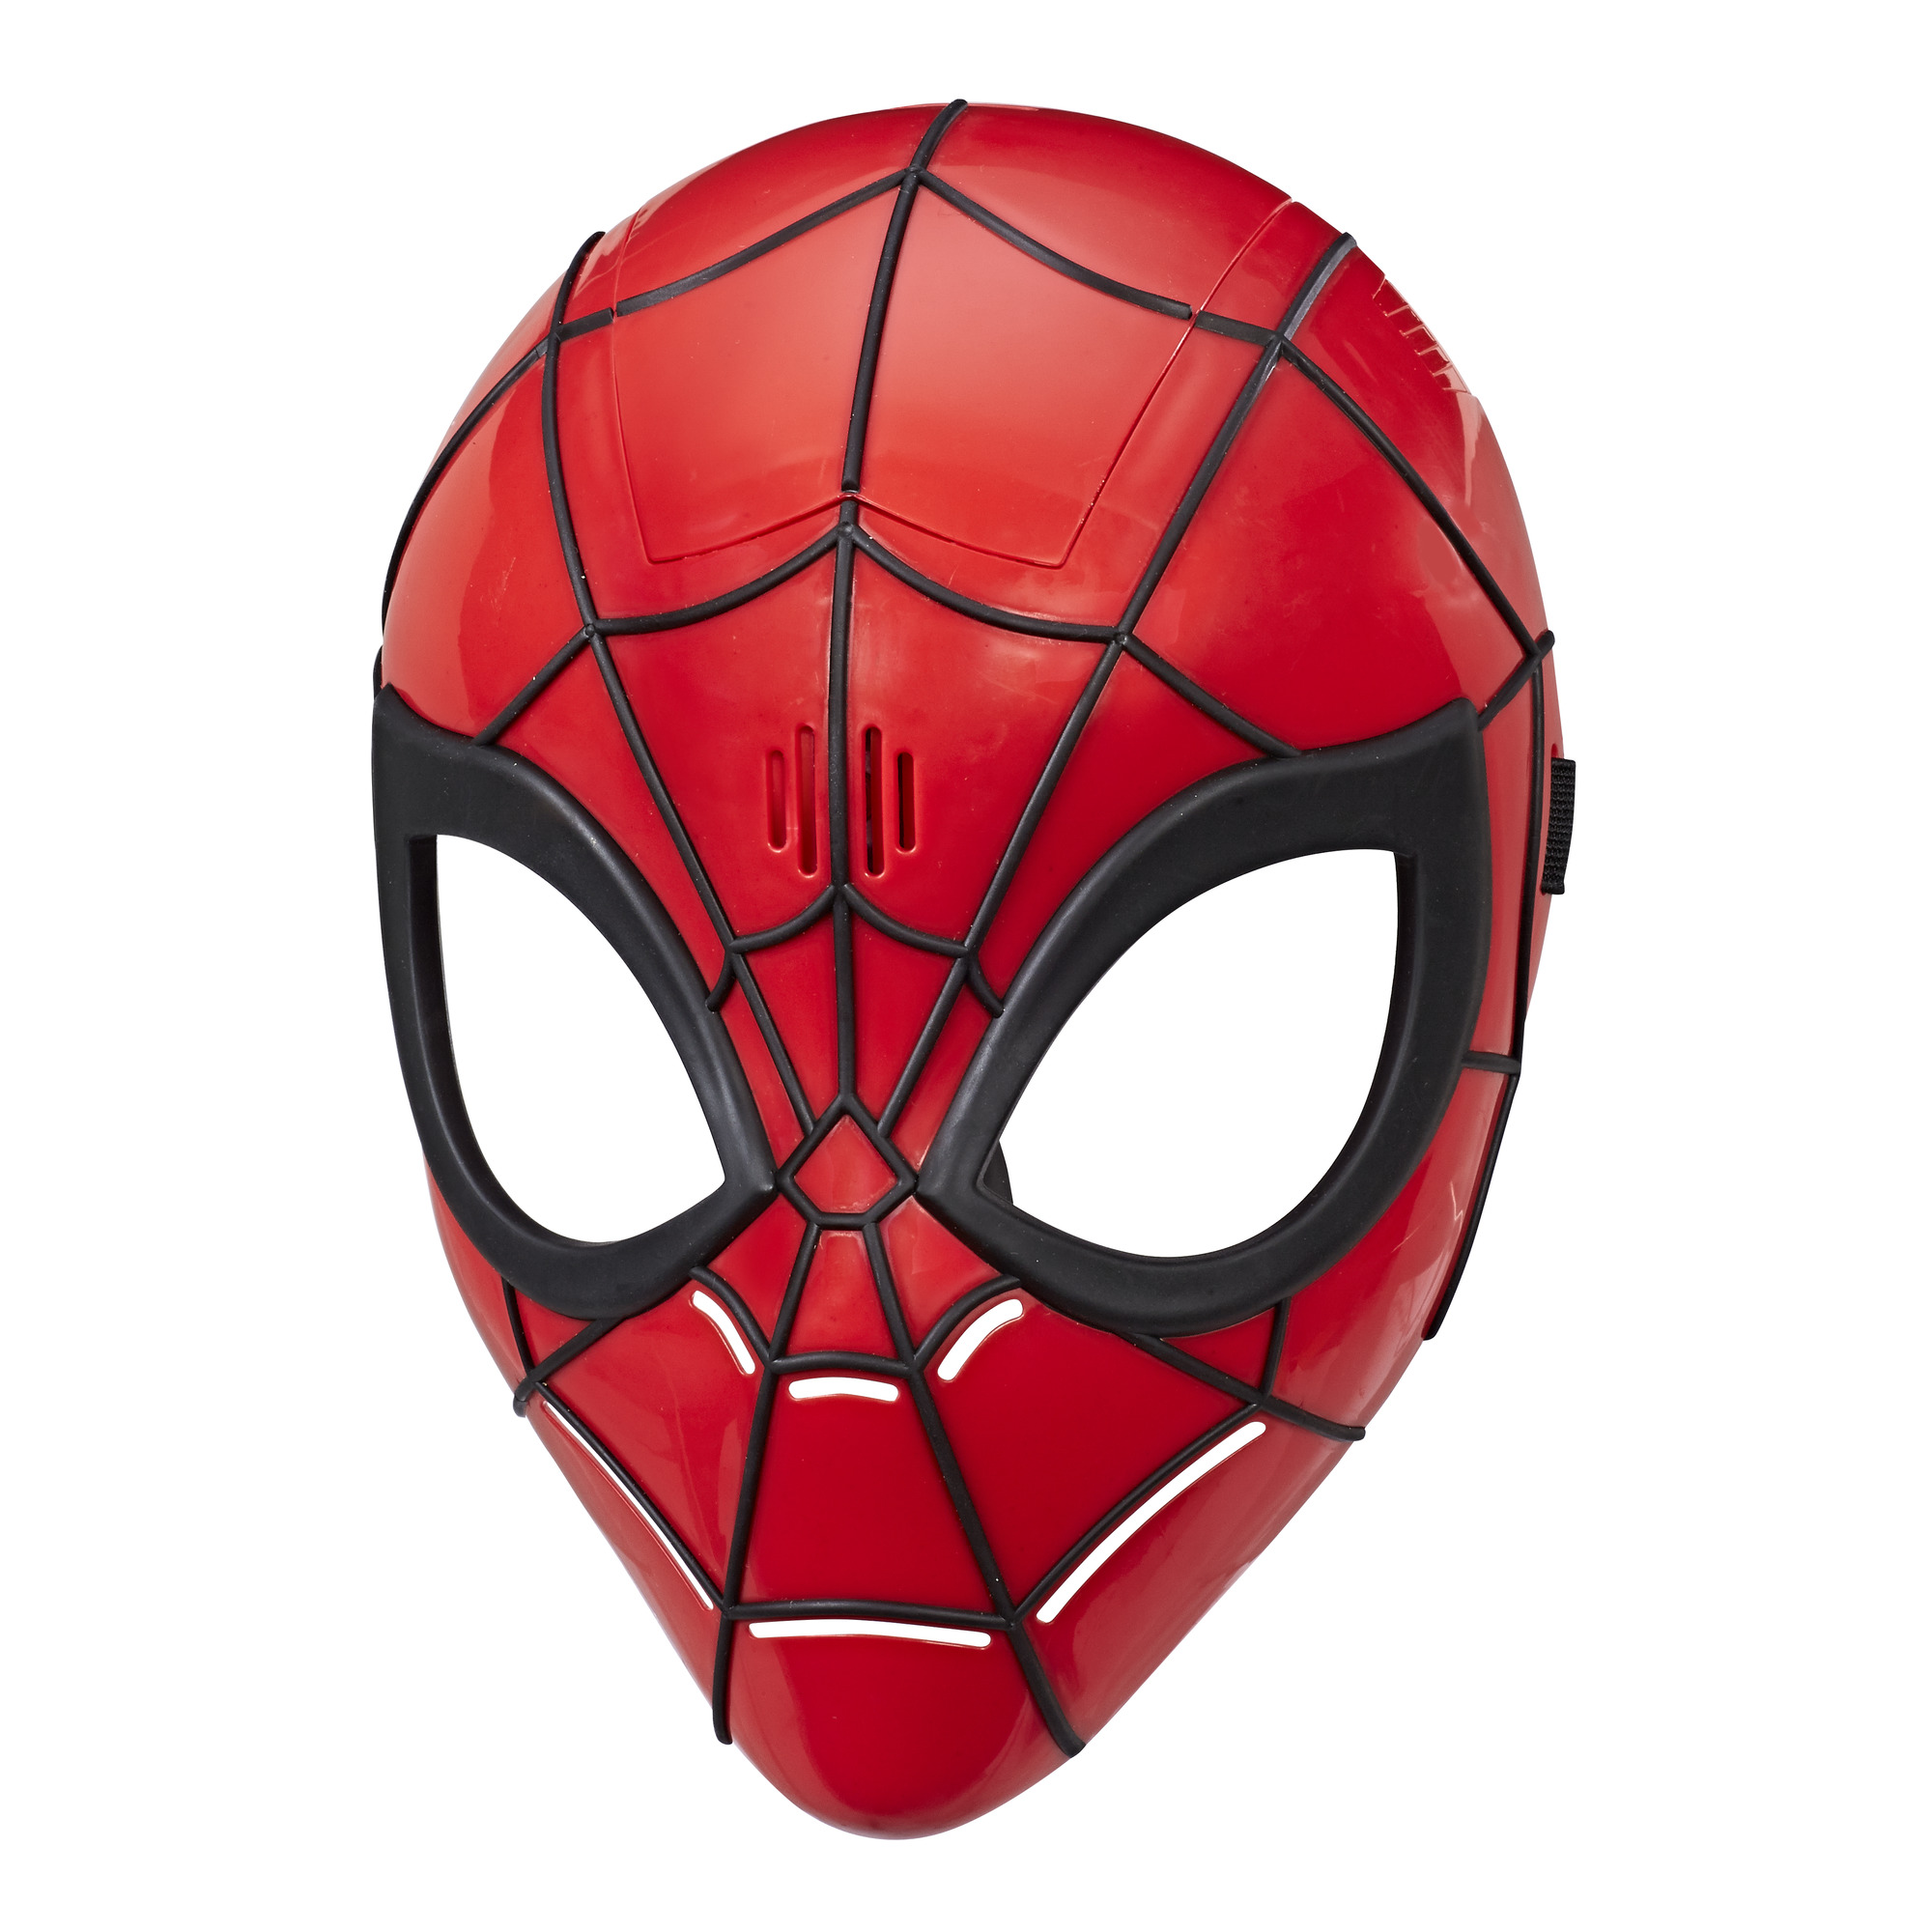 Marvel  Spider-Man Hero FX Mask PartNumber: A014170502 KsnValue: 9088621 MfgPartNumber: E0619.000